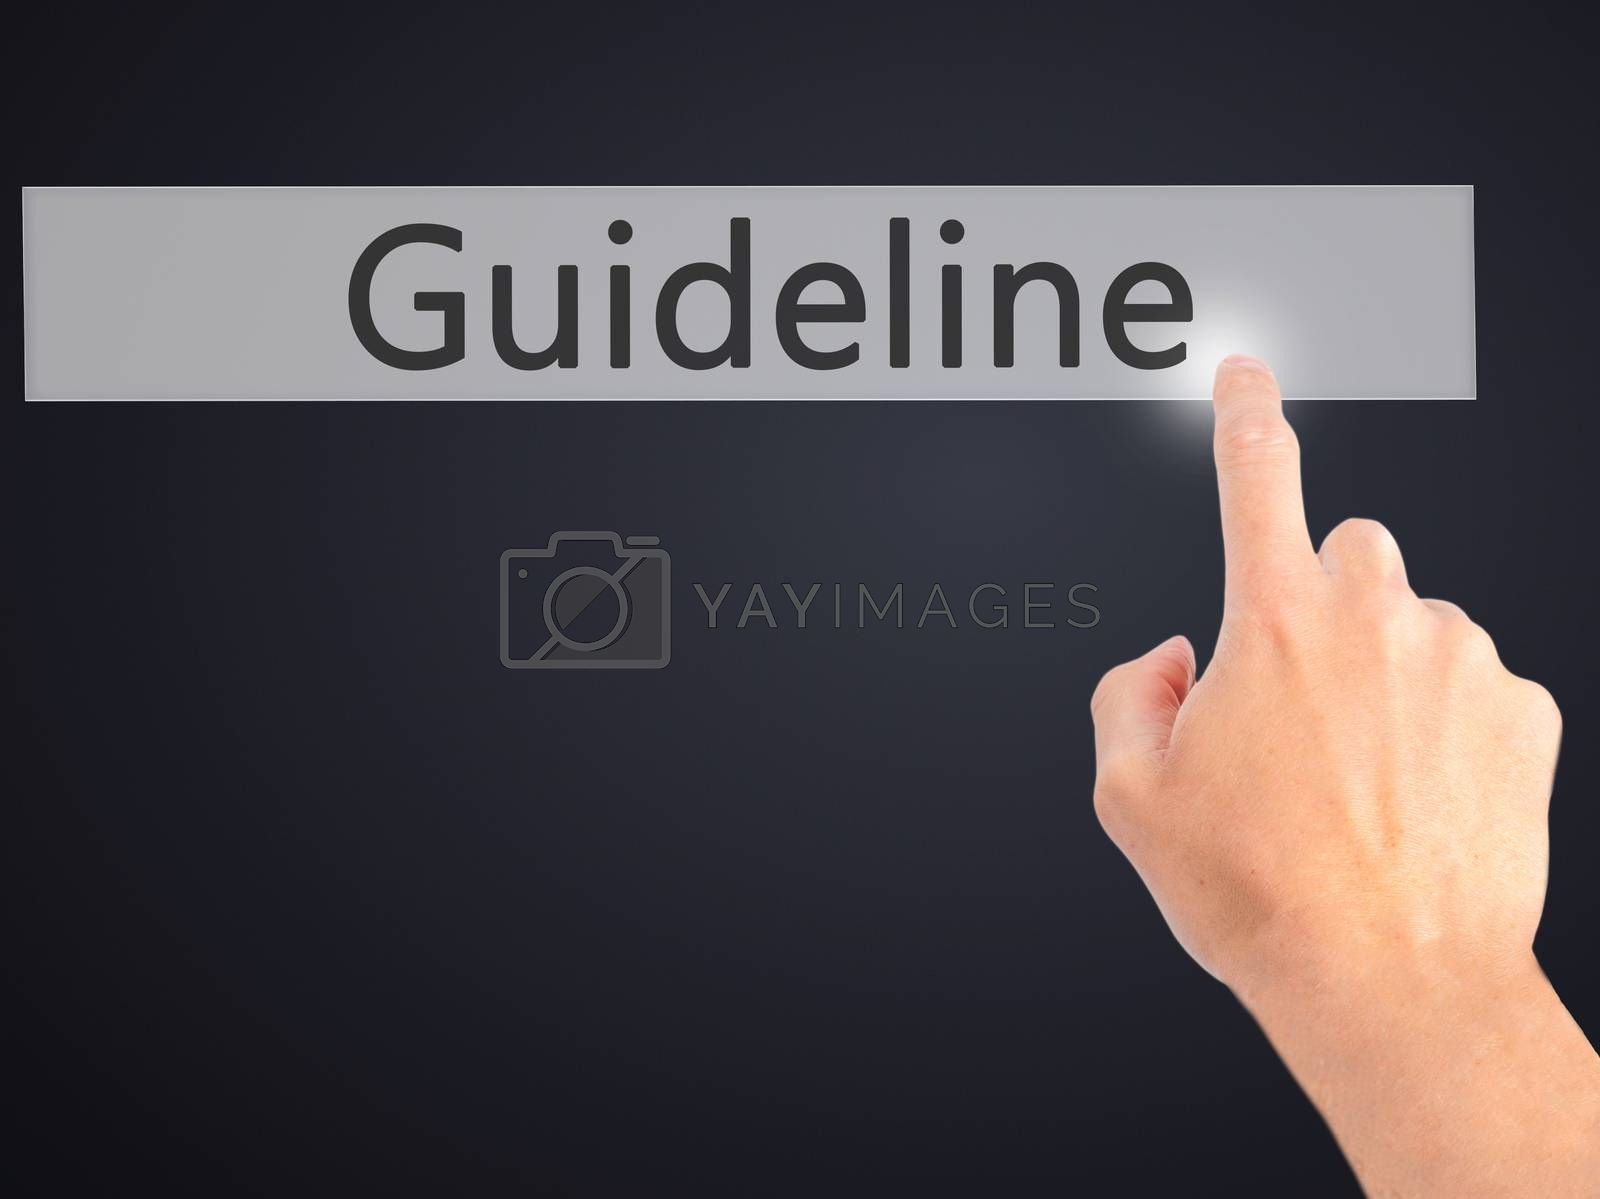 Guideline  - Hand pressing a button on blurred background concep by jackald